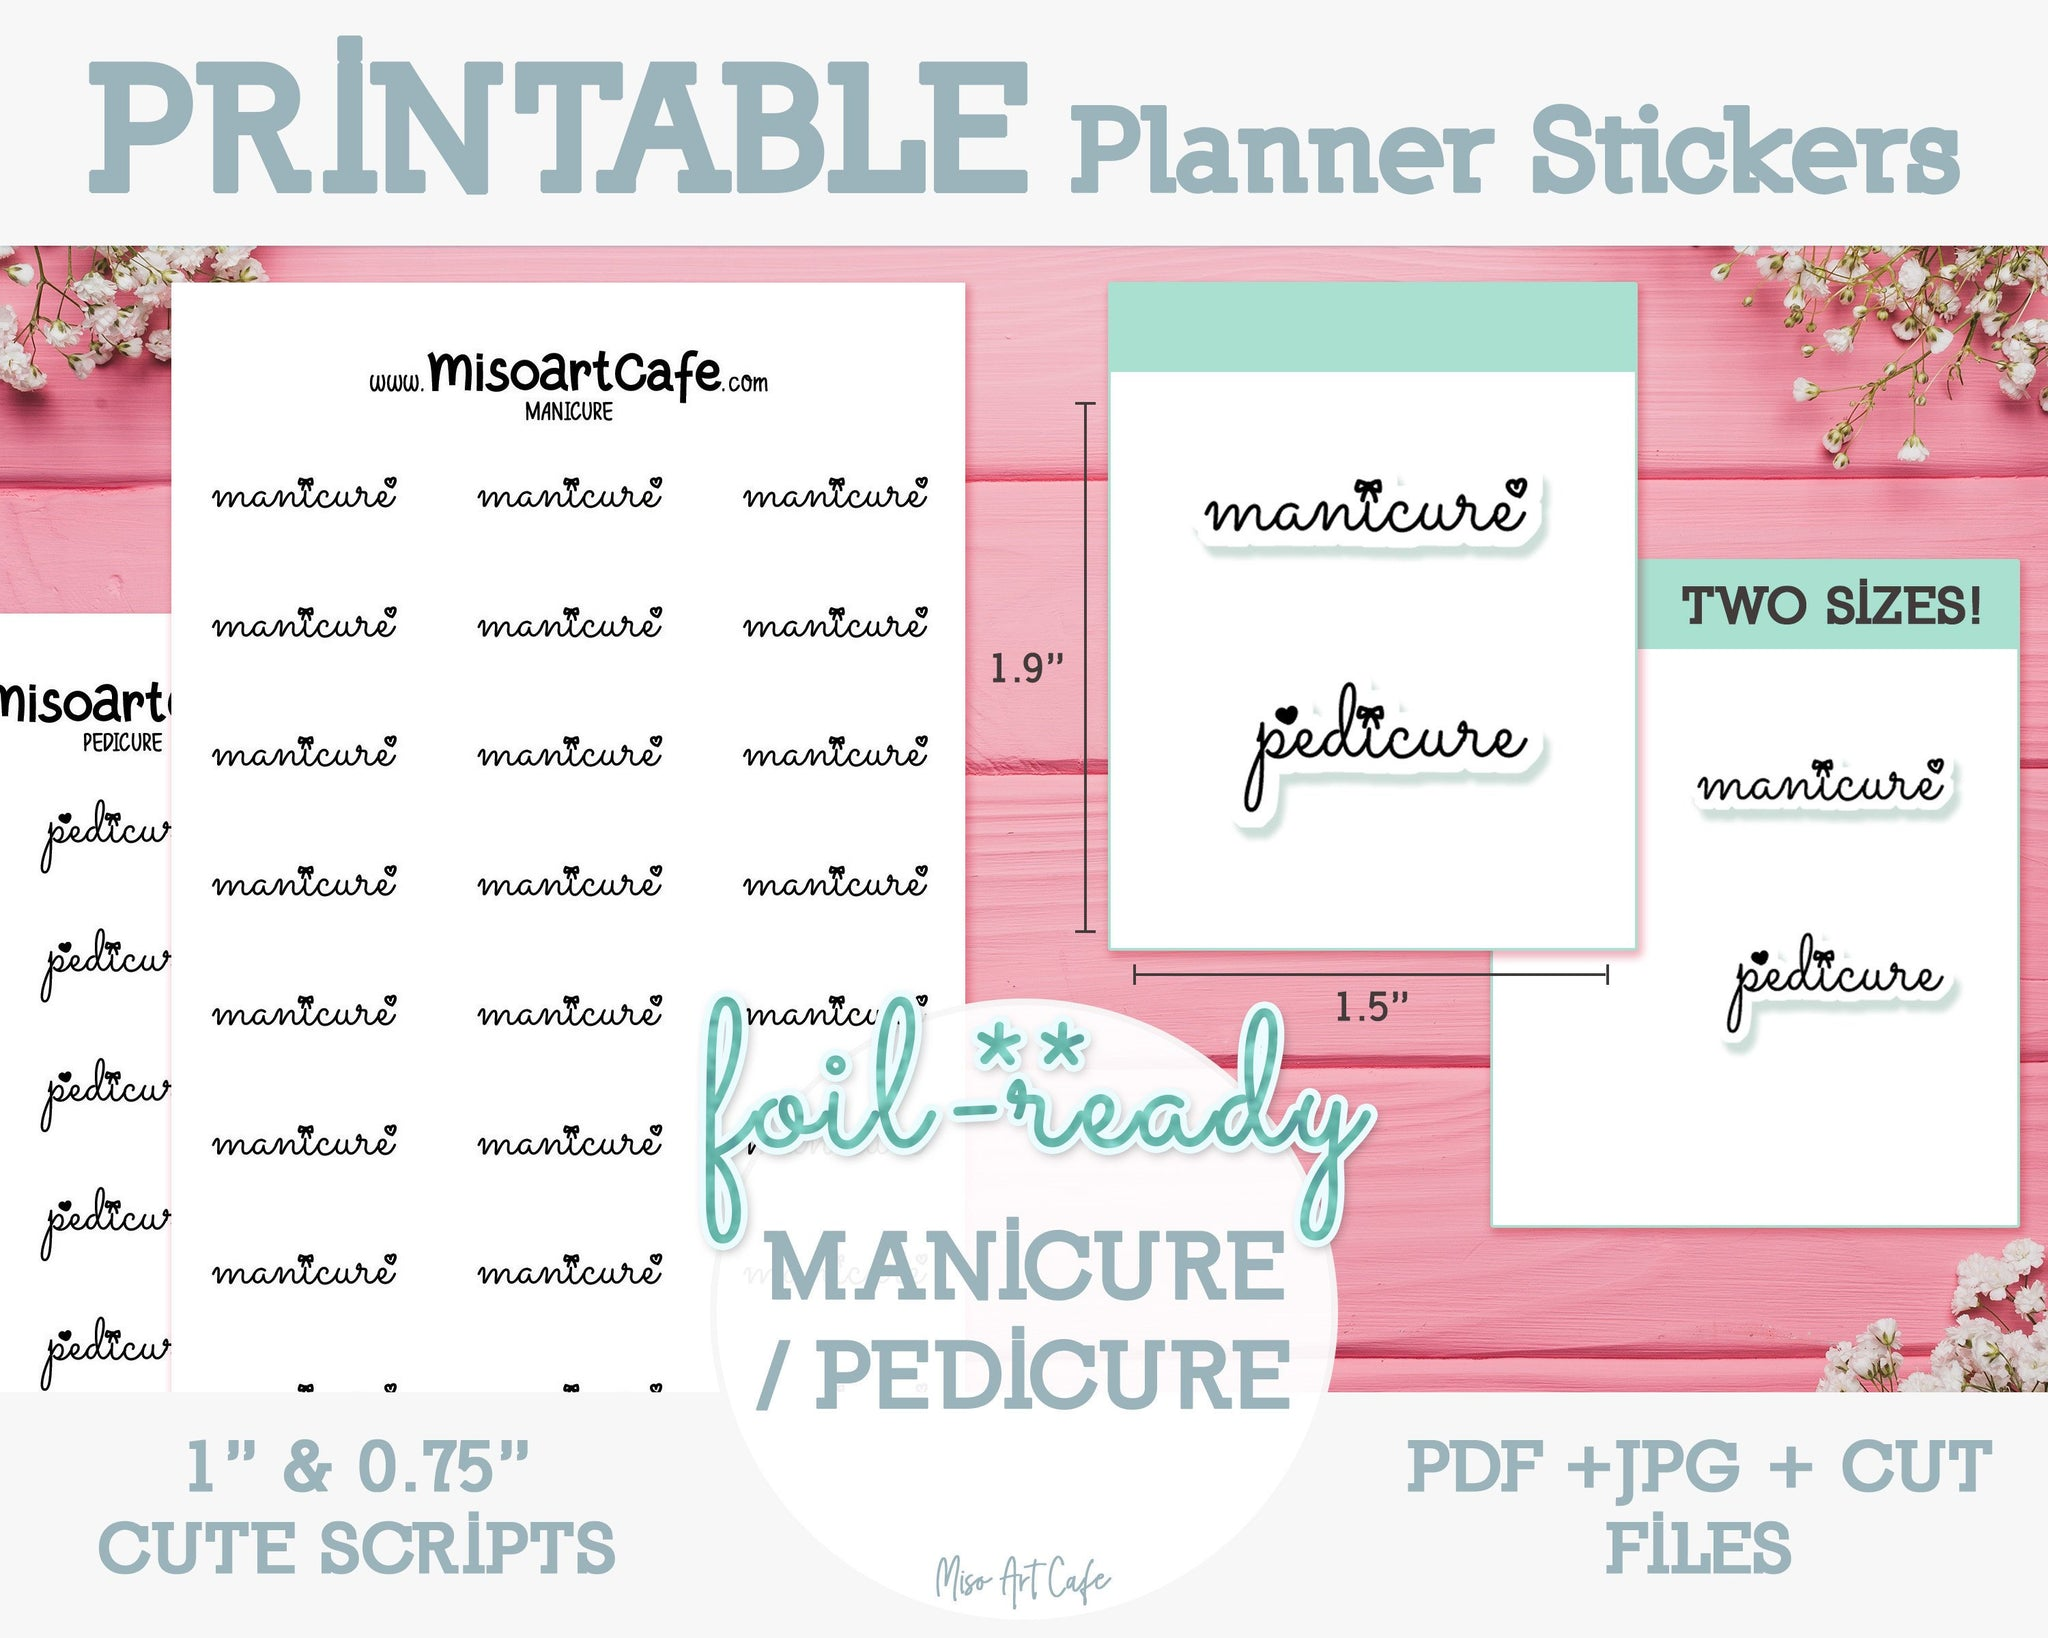 Printable Manicure / Pedicure Foil-Ready Scripts - Typography Planner Stickers - Miso Art Cafe